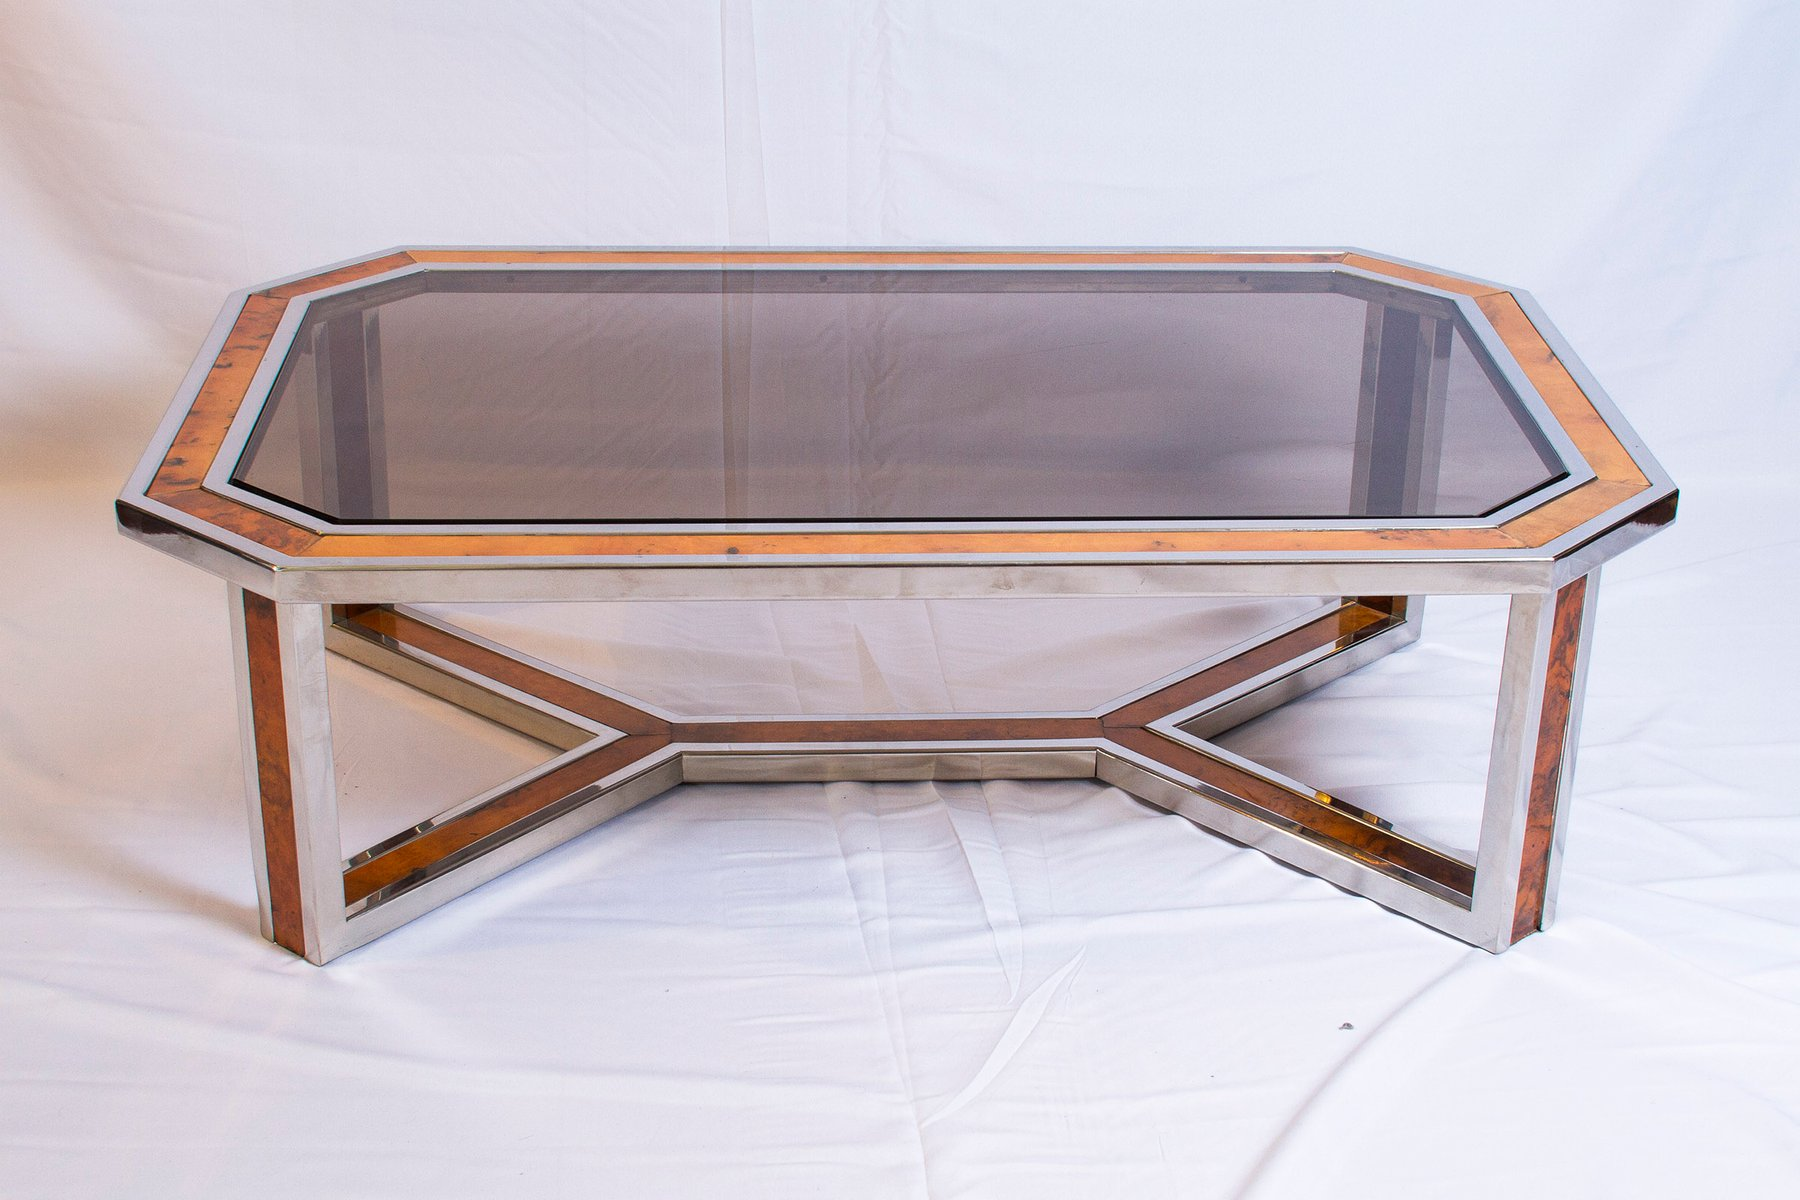 Chrome and Wood Coffee Table by Romeo Rega 1970s for sale at Pamono